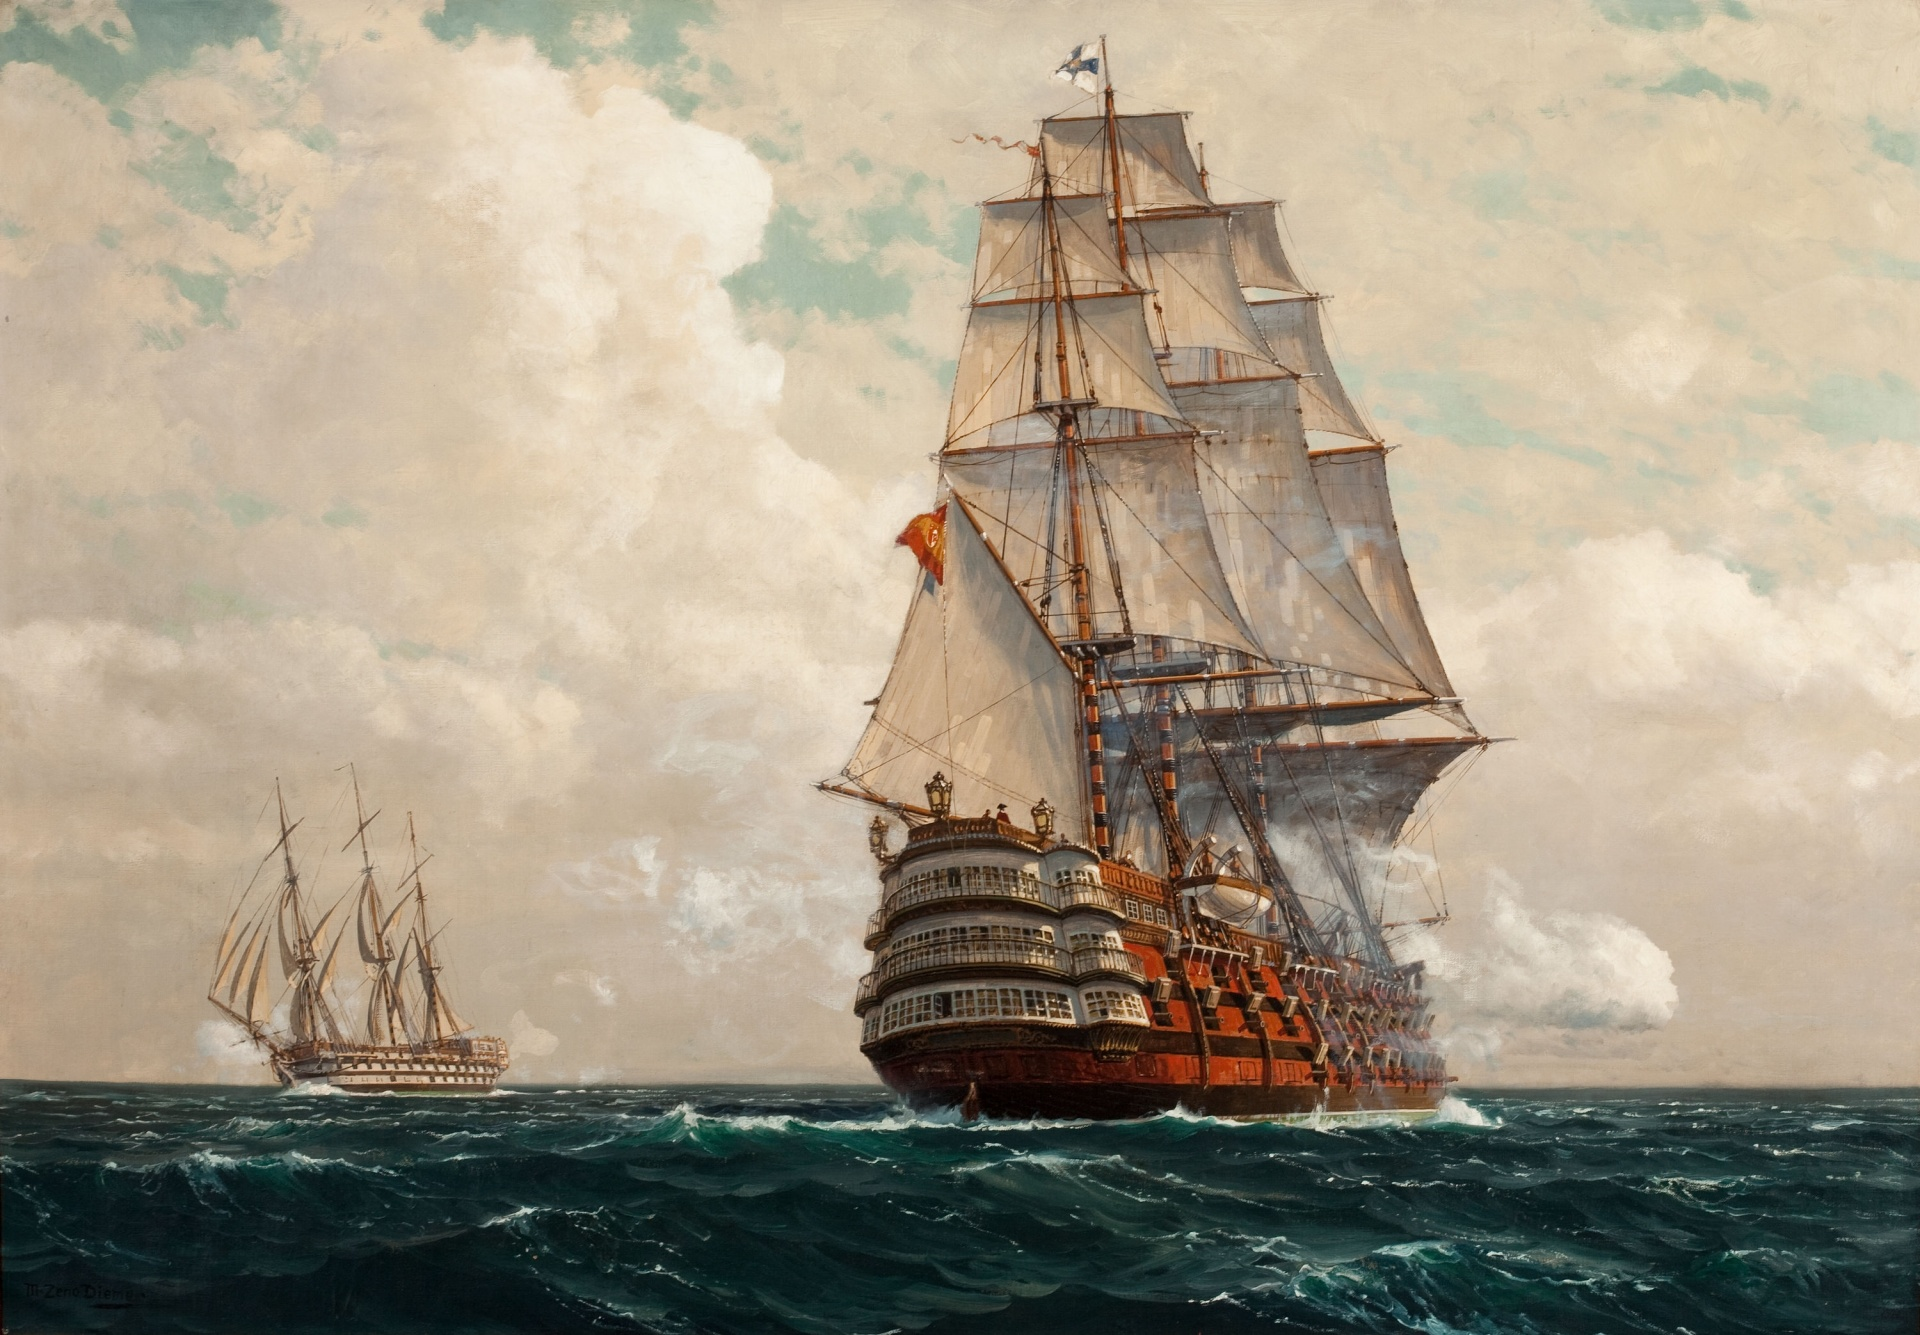 Ship At Sea Free Stock Photo - Public Domain Pictures